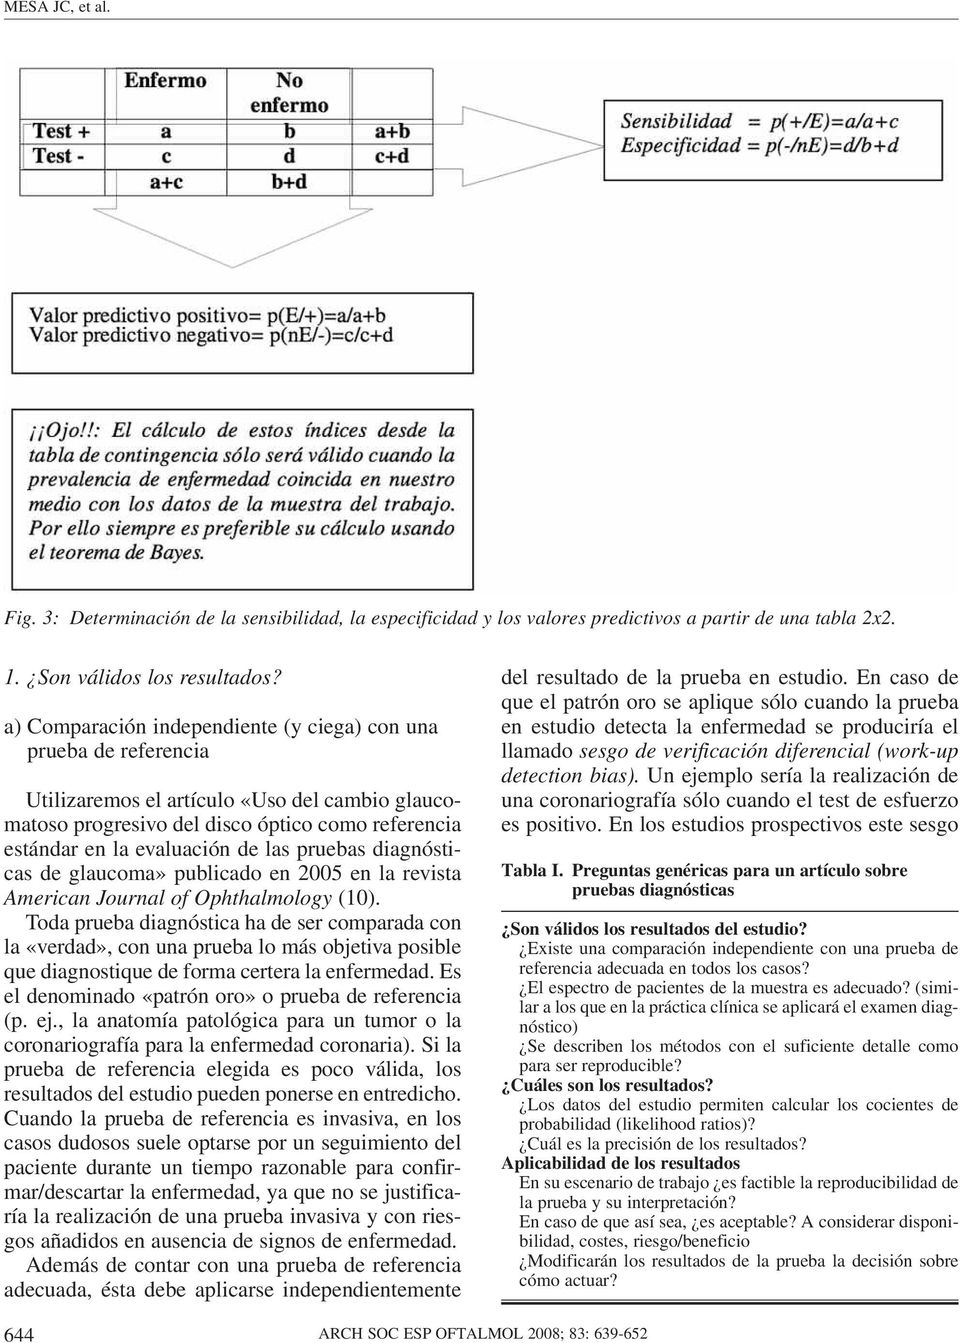 pruebas diagnósticas de glaucoma» publicado en 2005 en la revista American Journal of Ophthalmology (10).